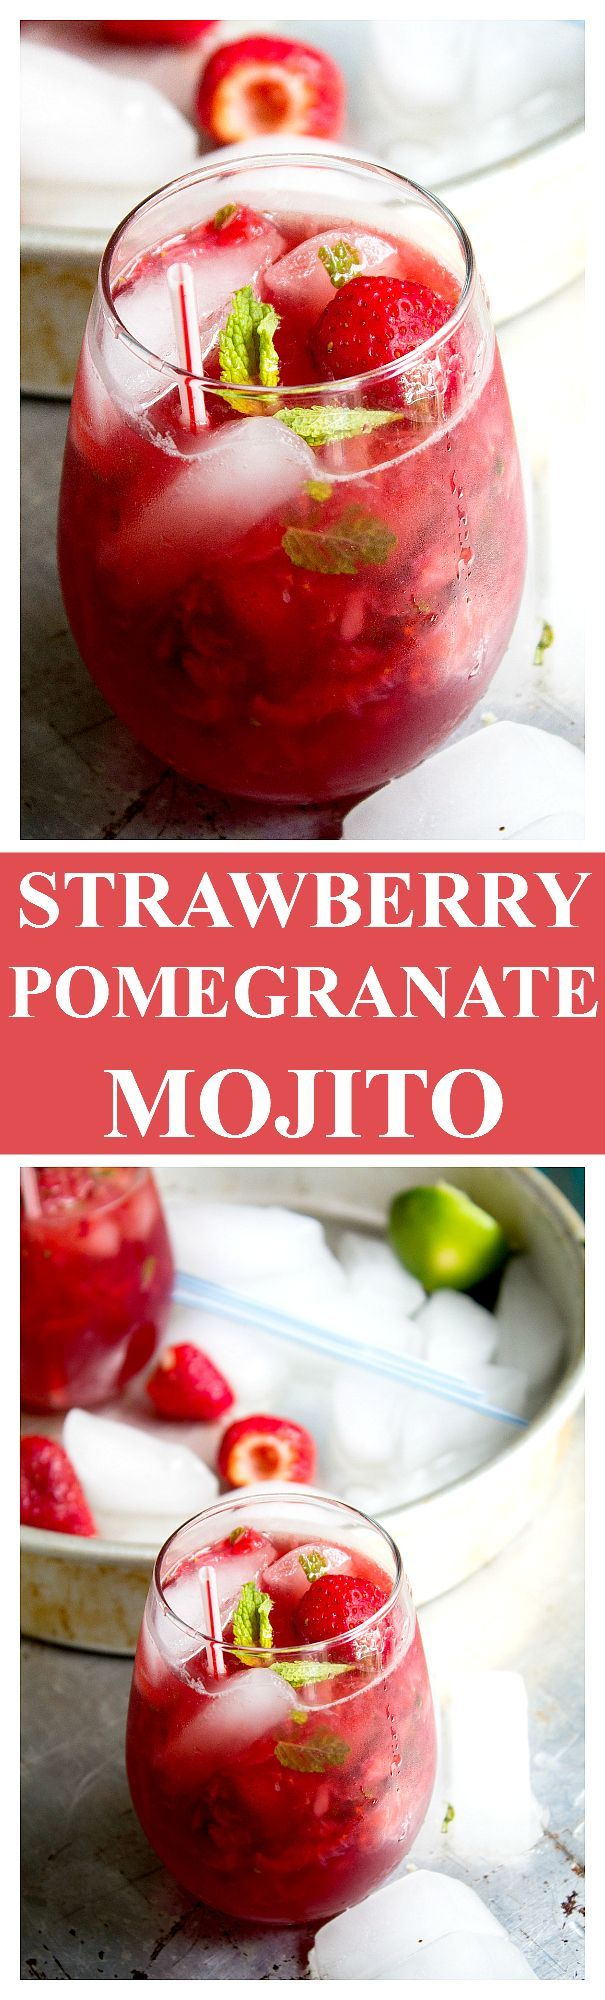 Strawberry Pom Mojito